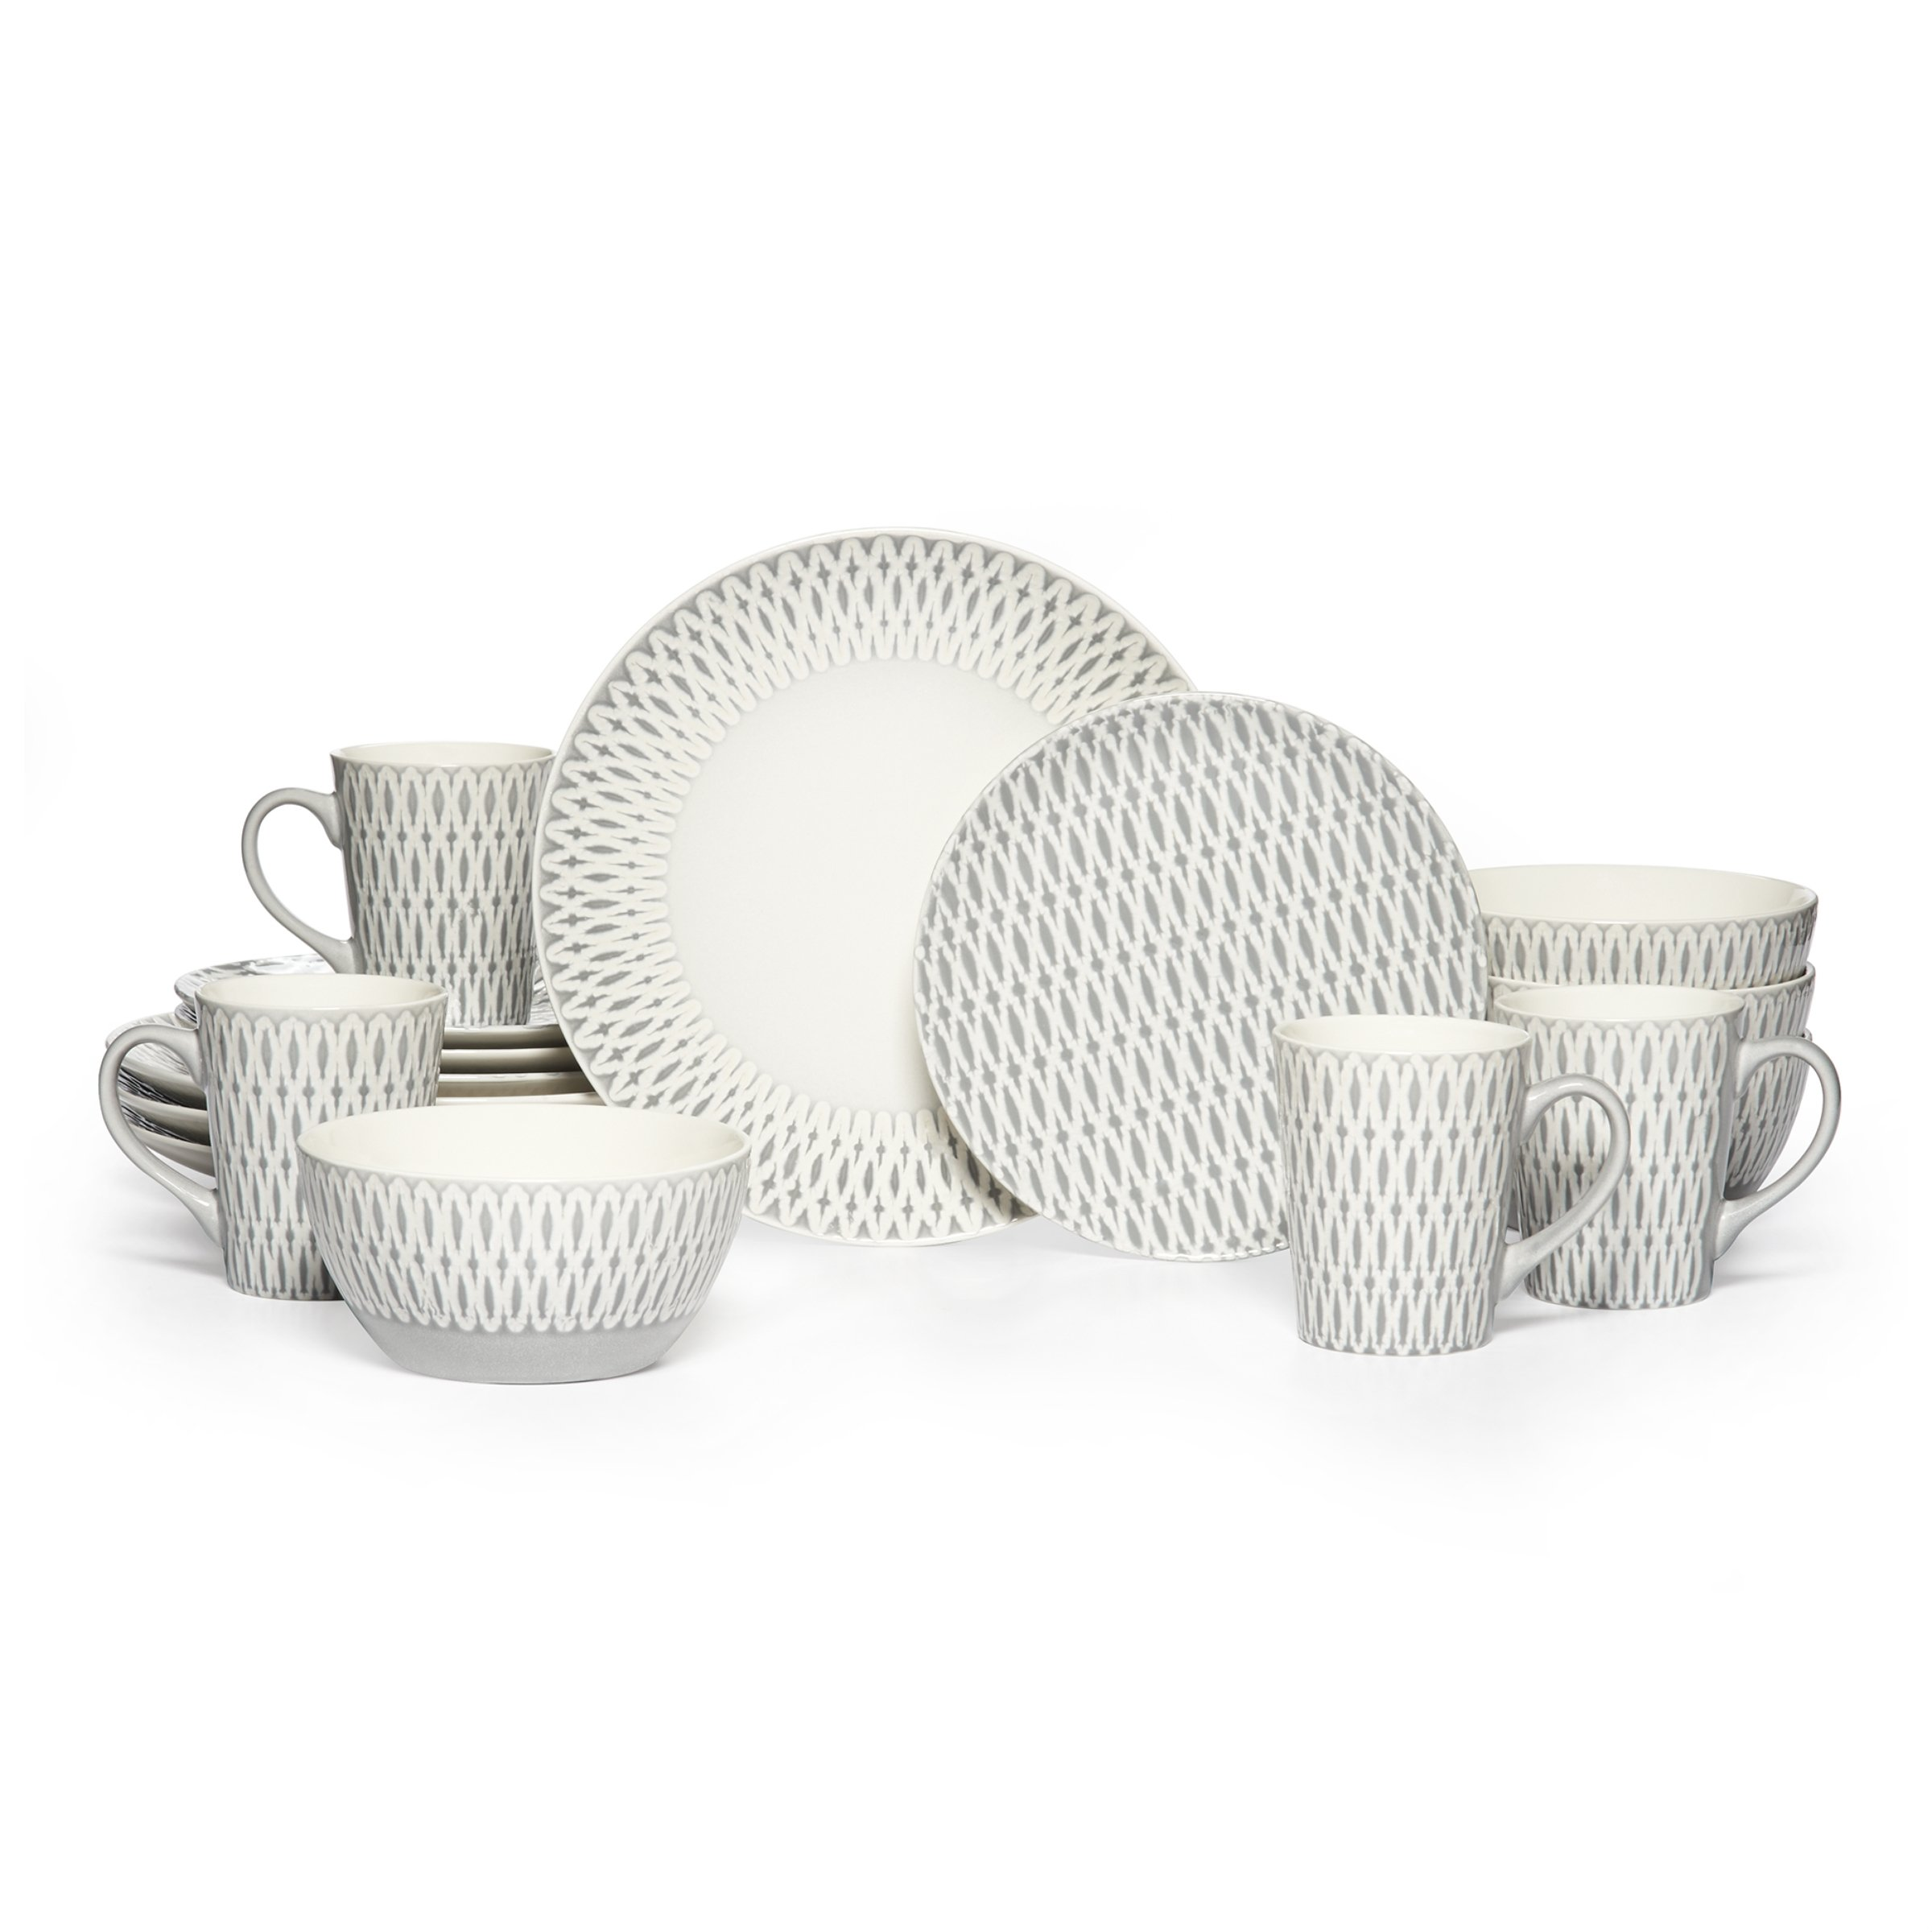 Gourmet Basics by Mikasa Aurora 16 Piece Dinnerware Set (Service For 4), Gray by Gourmet Basics by Mikasa